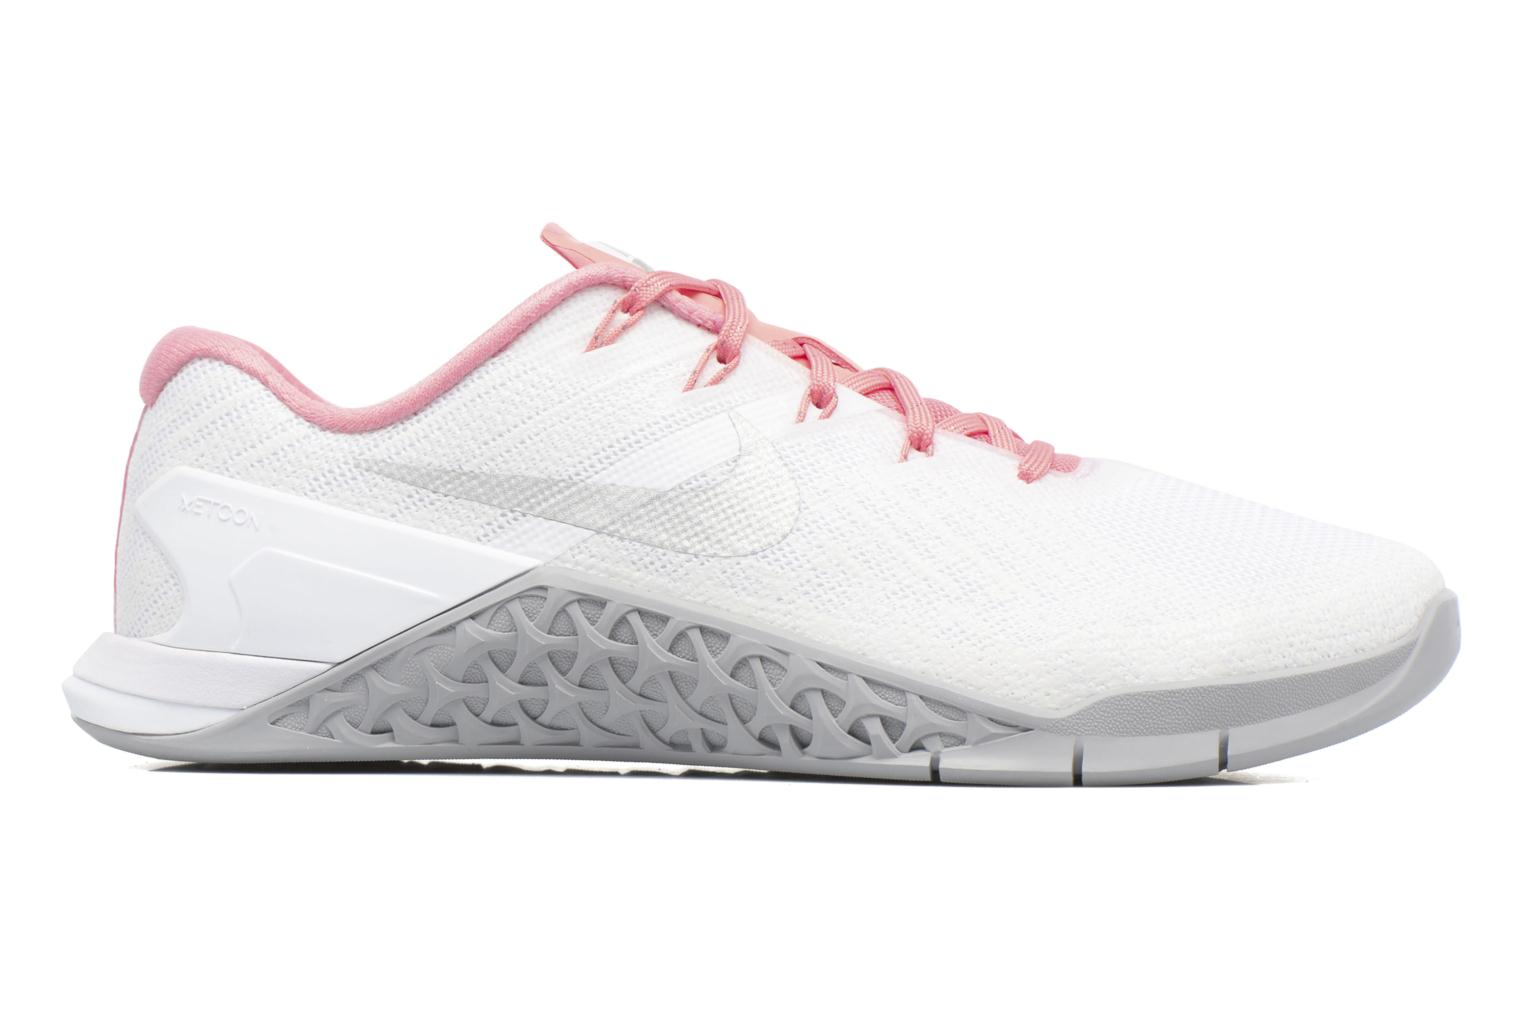 Wmns Nike Metcon 3 White/Metallic Silver-Bright Melon